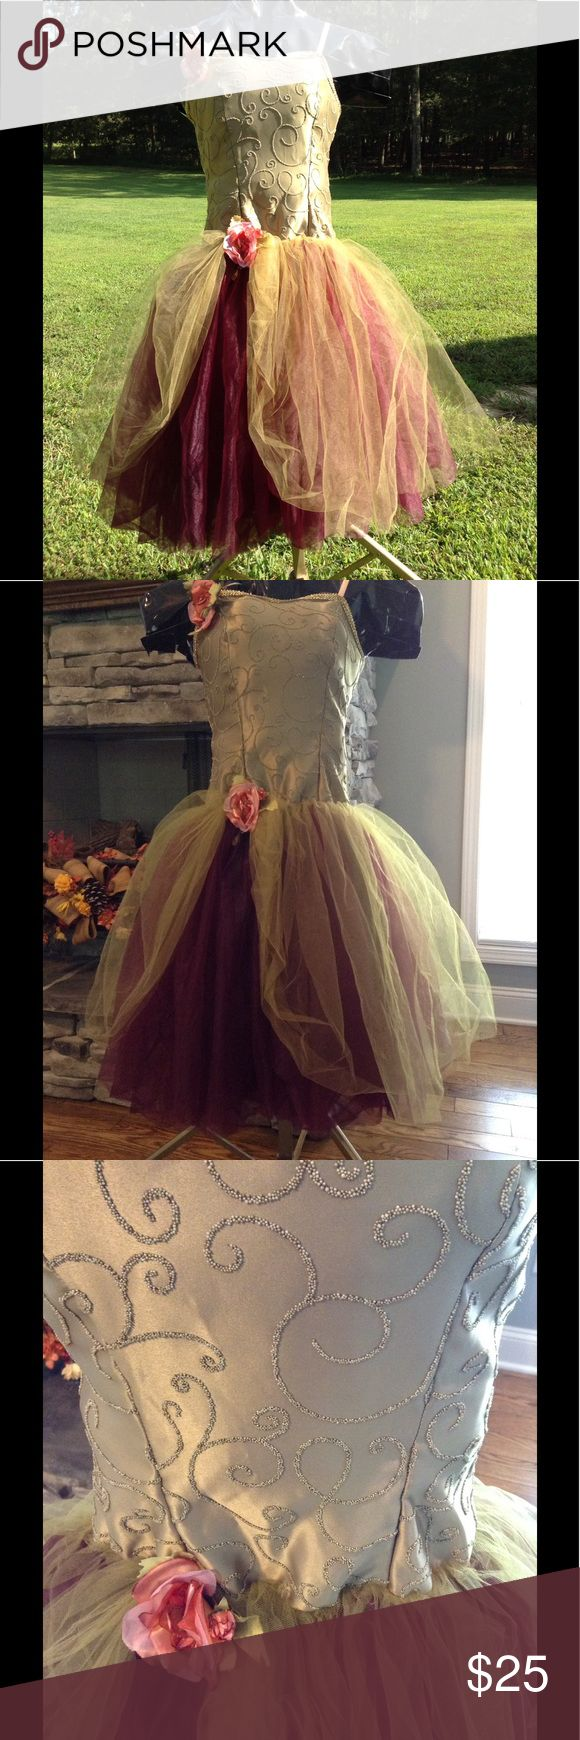 Fall colors ballet dance costume size 8A olive This beautiful dance outfit is in very good condition. The flower on the shoulder can be removed. Colors are perfect for fall...olive green and burgundy. I think this costume would be awesome if repurposed for Halloween as an autumn fairy princess or even a tutu scarecrow. Pinterest has some neat ideas! Tags says size 8, but it runs small. I would call it an adult small or youth xl. curtain call costumes Other